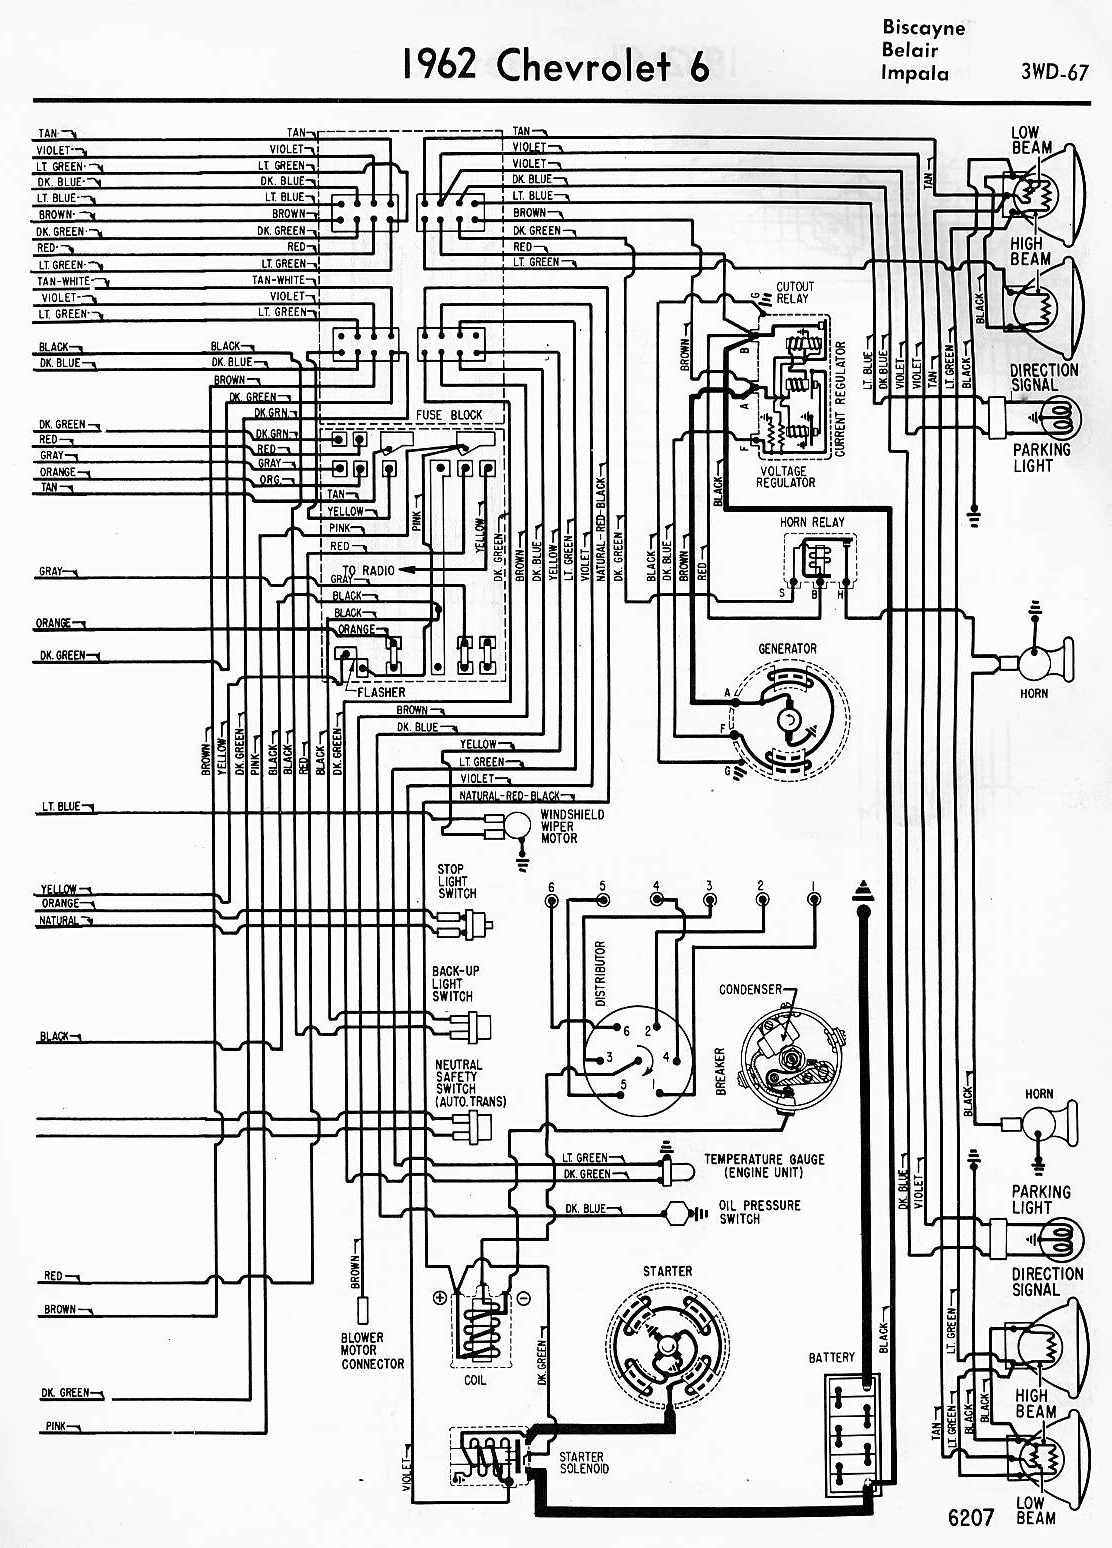 64 impala headlight wiring diagram 2001 impala headlight wiring diagram ecm 067h2 k6a 26 34 connector wiring diagram,h • home ... #4